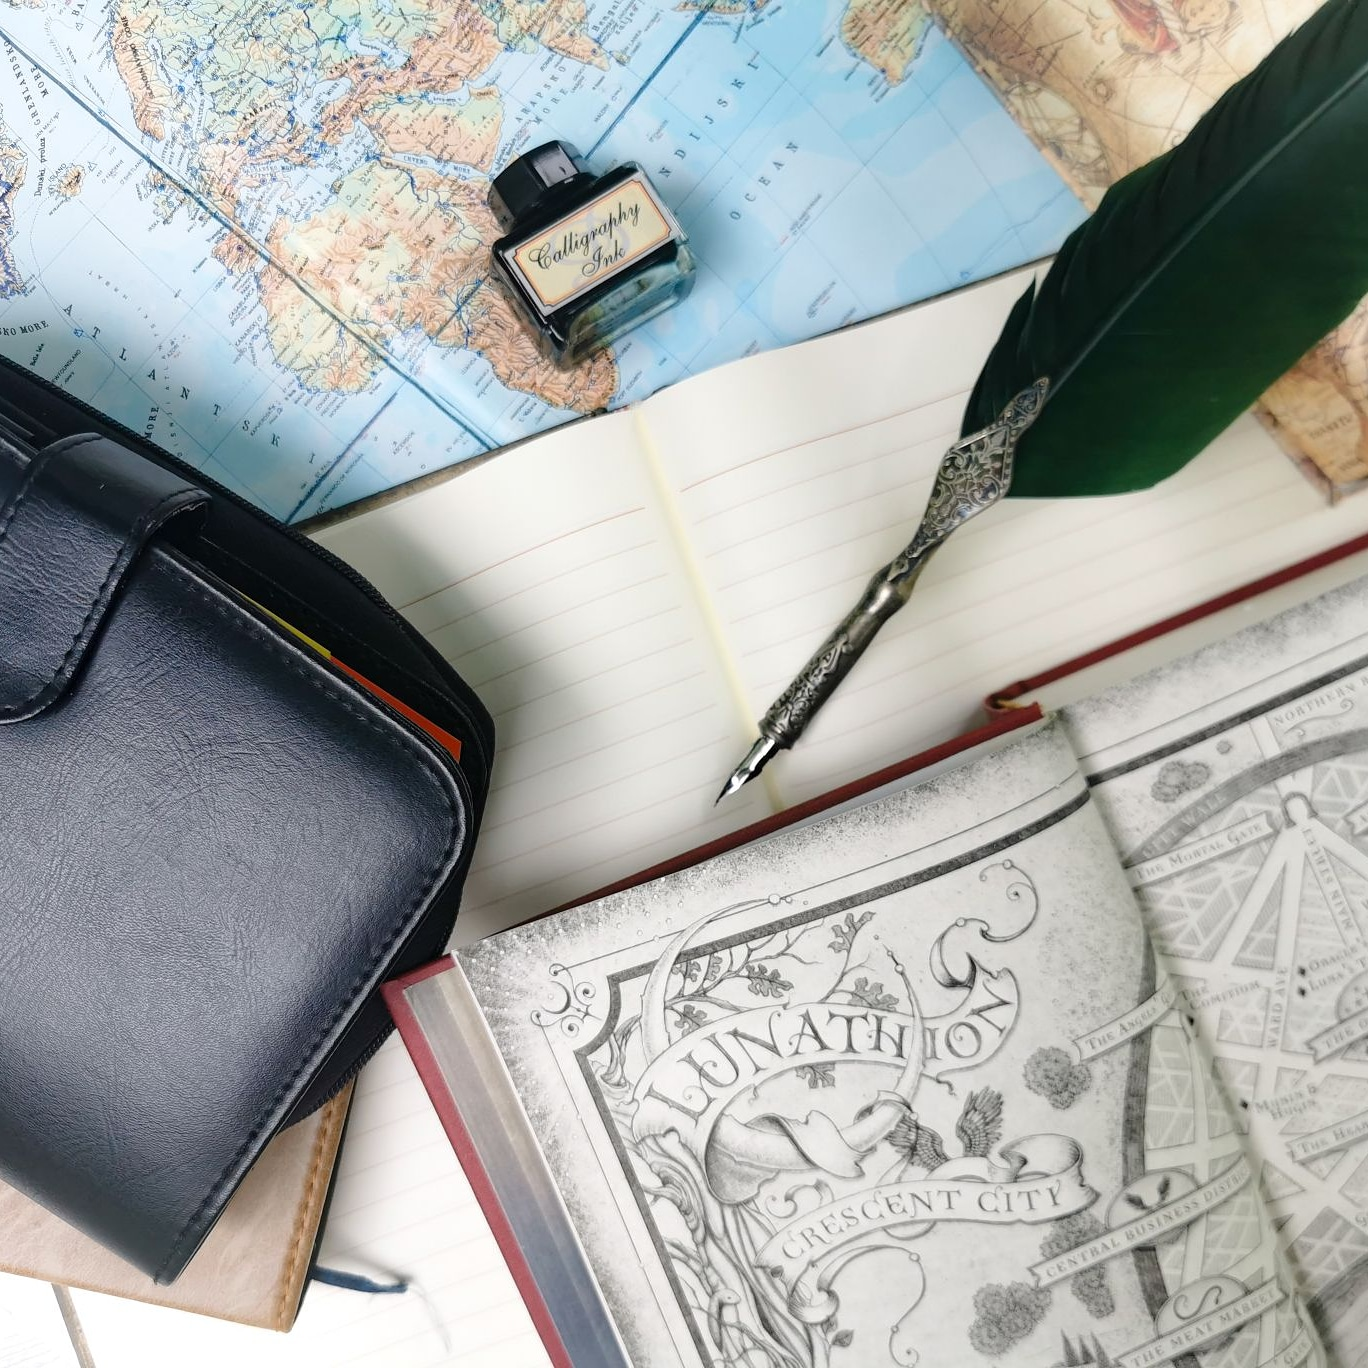 Map, book, notebooks and a quill